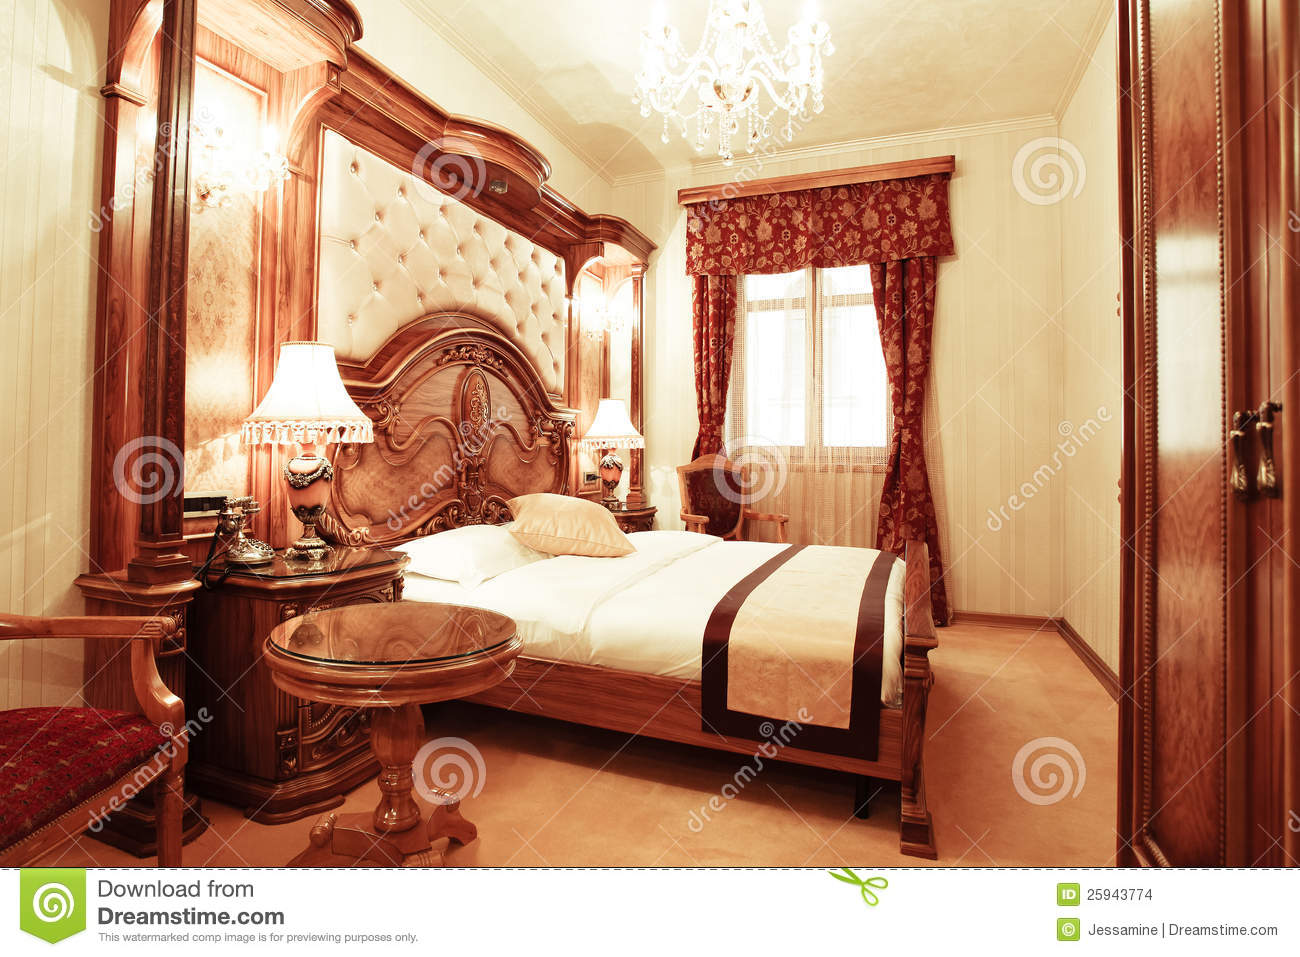 chambre coucher de luxe images stock image 25943774